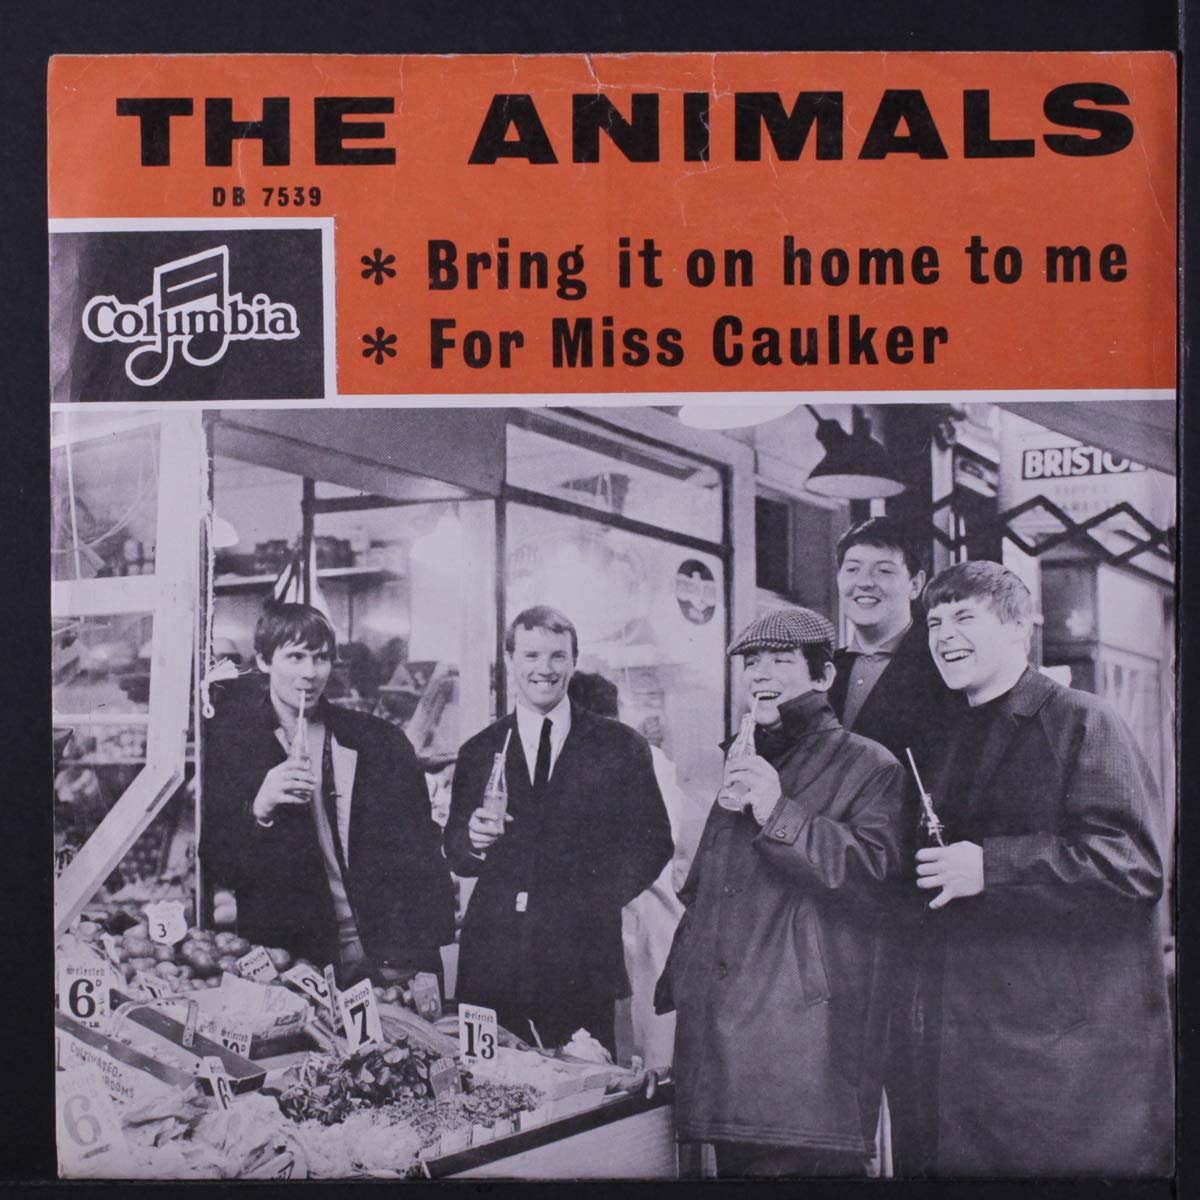 bring it on home to me / for miss caulker